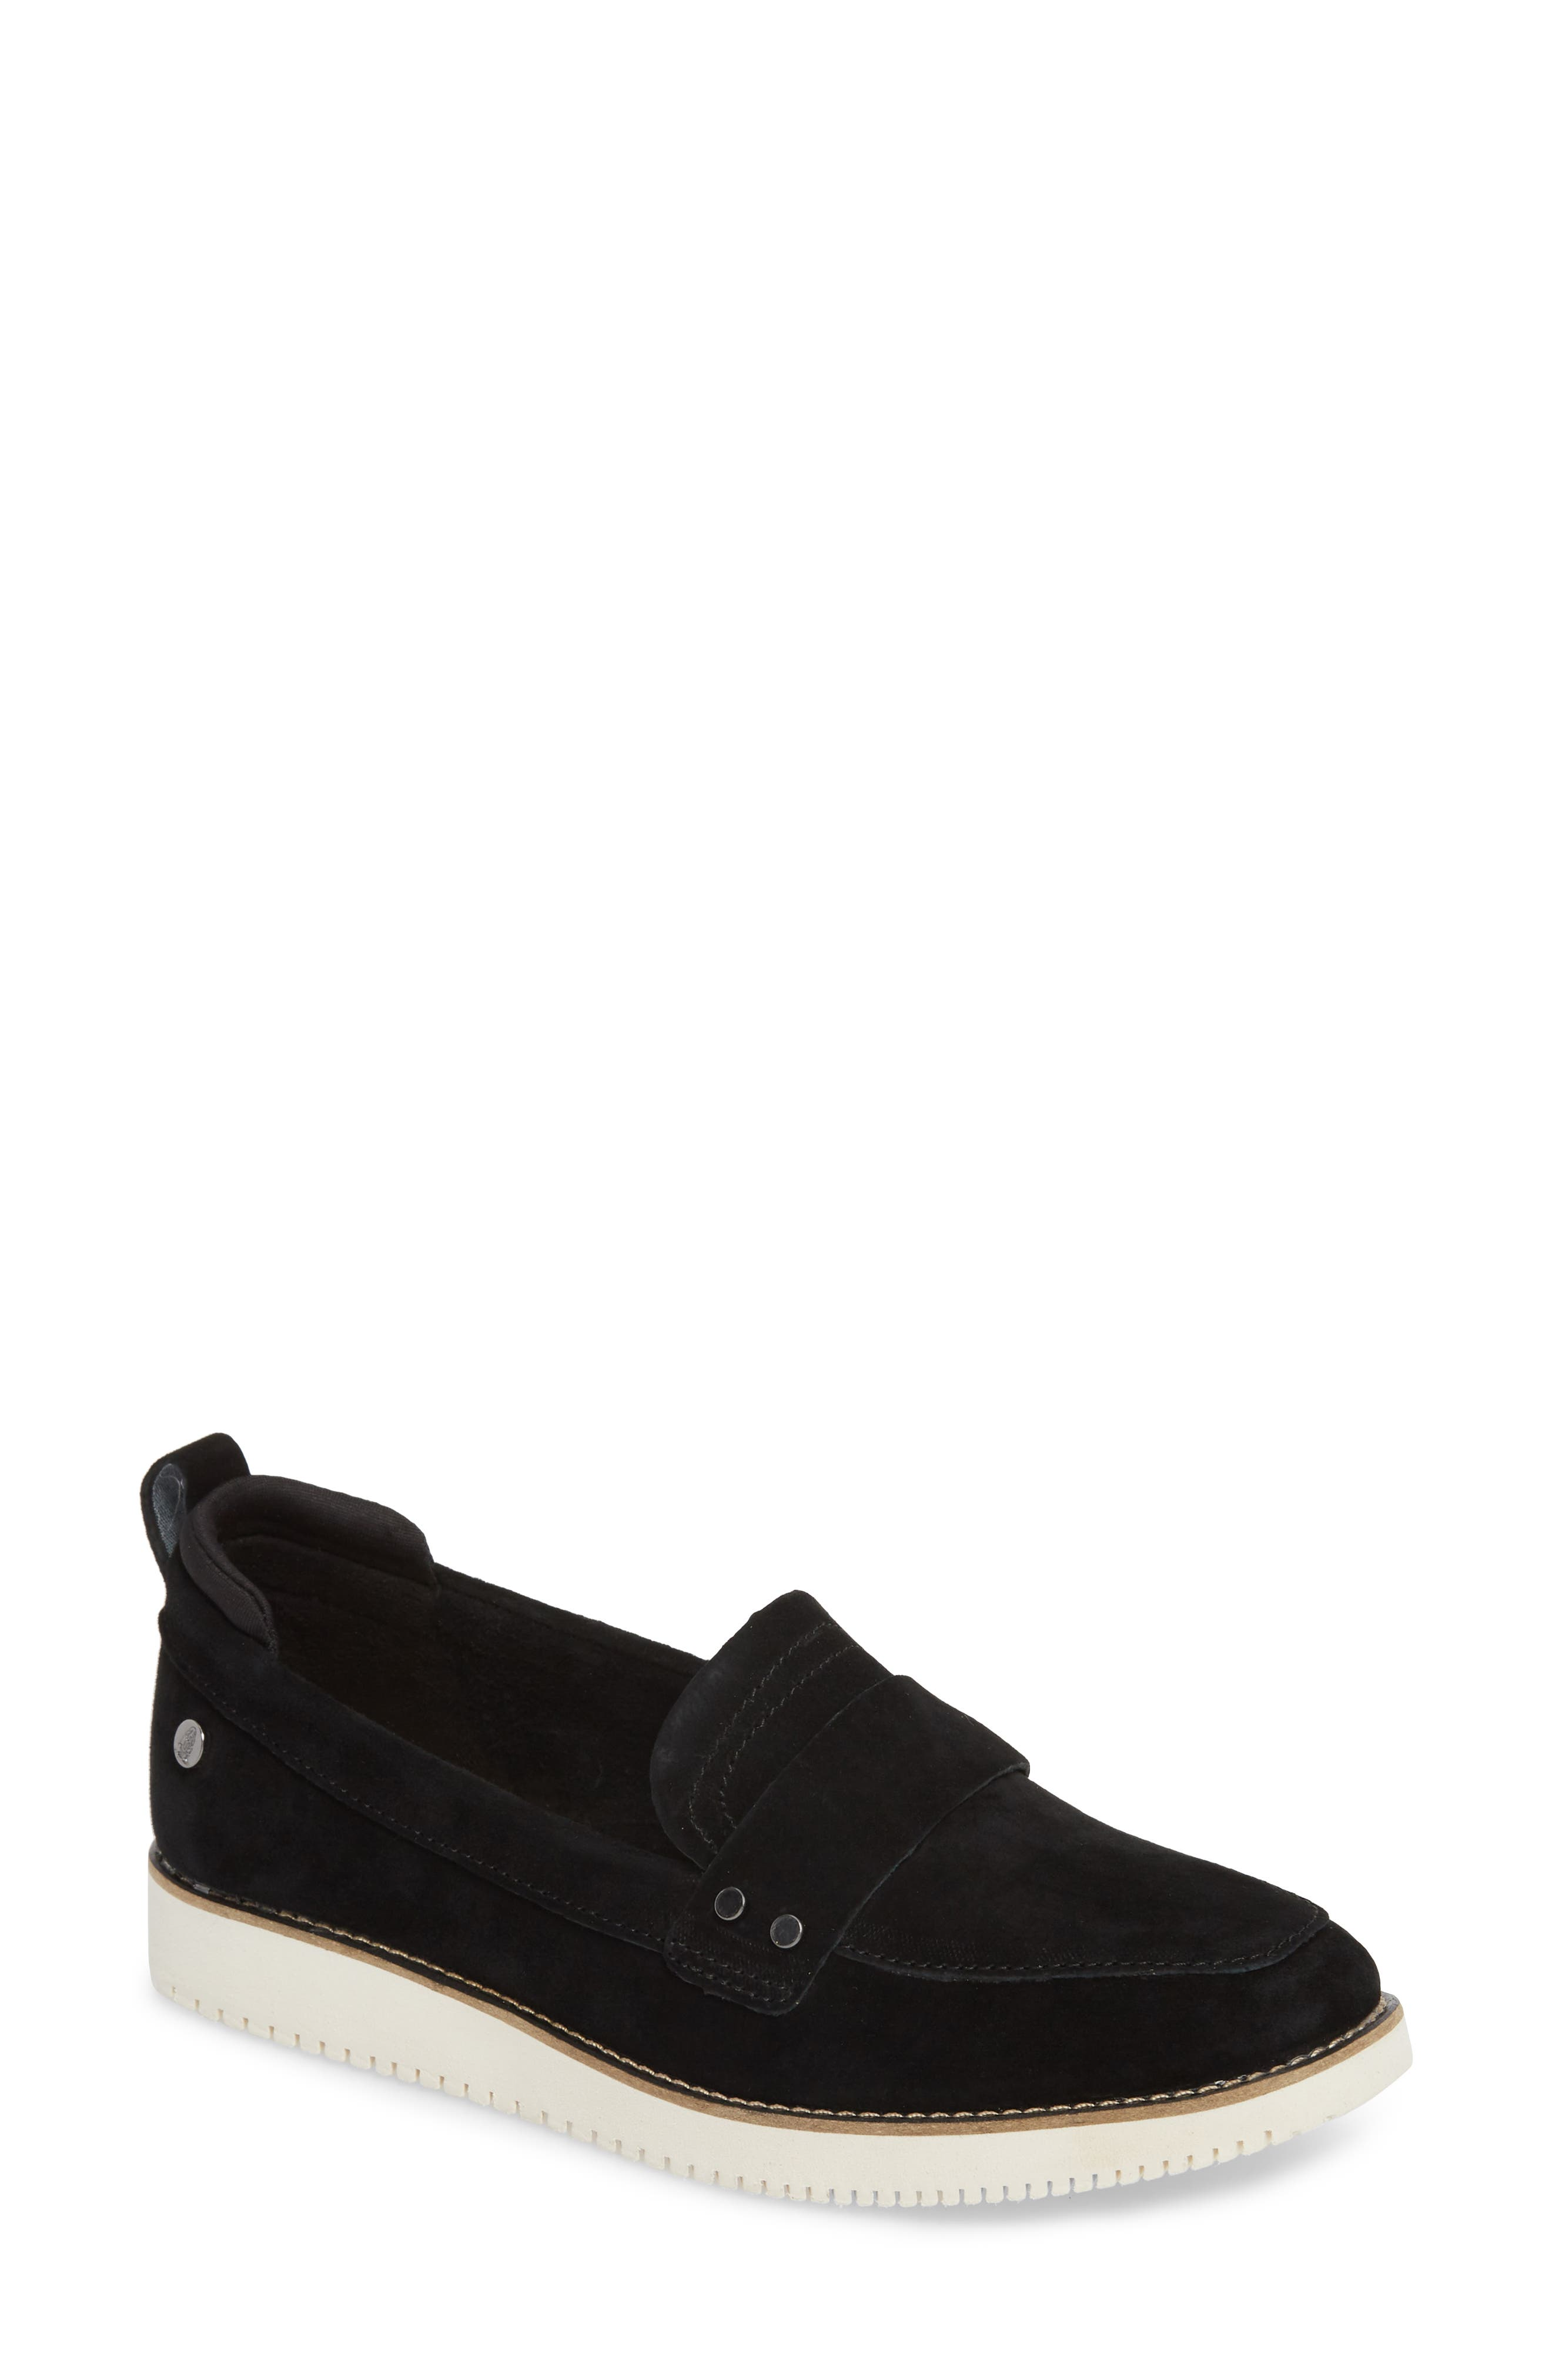 HUSH PUPPIES<SUP>®</SUP> Chowchow Loafer, Main, color, 001